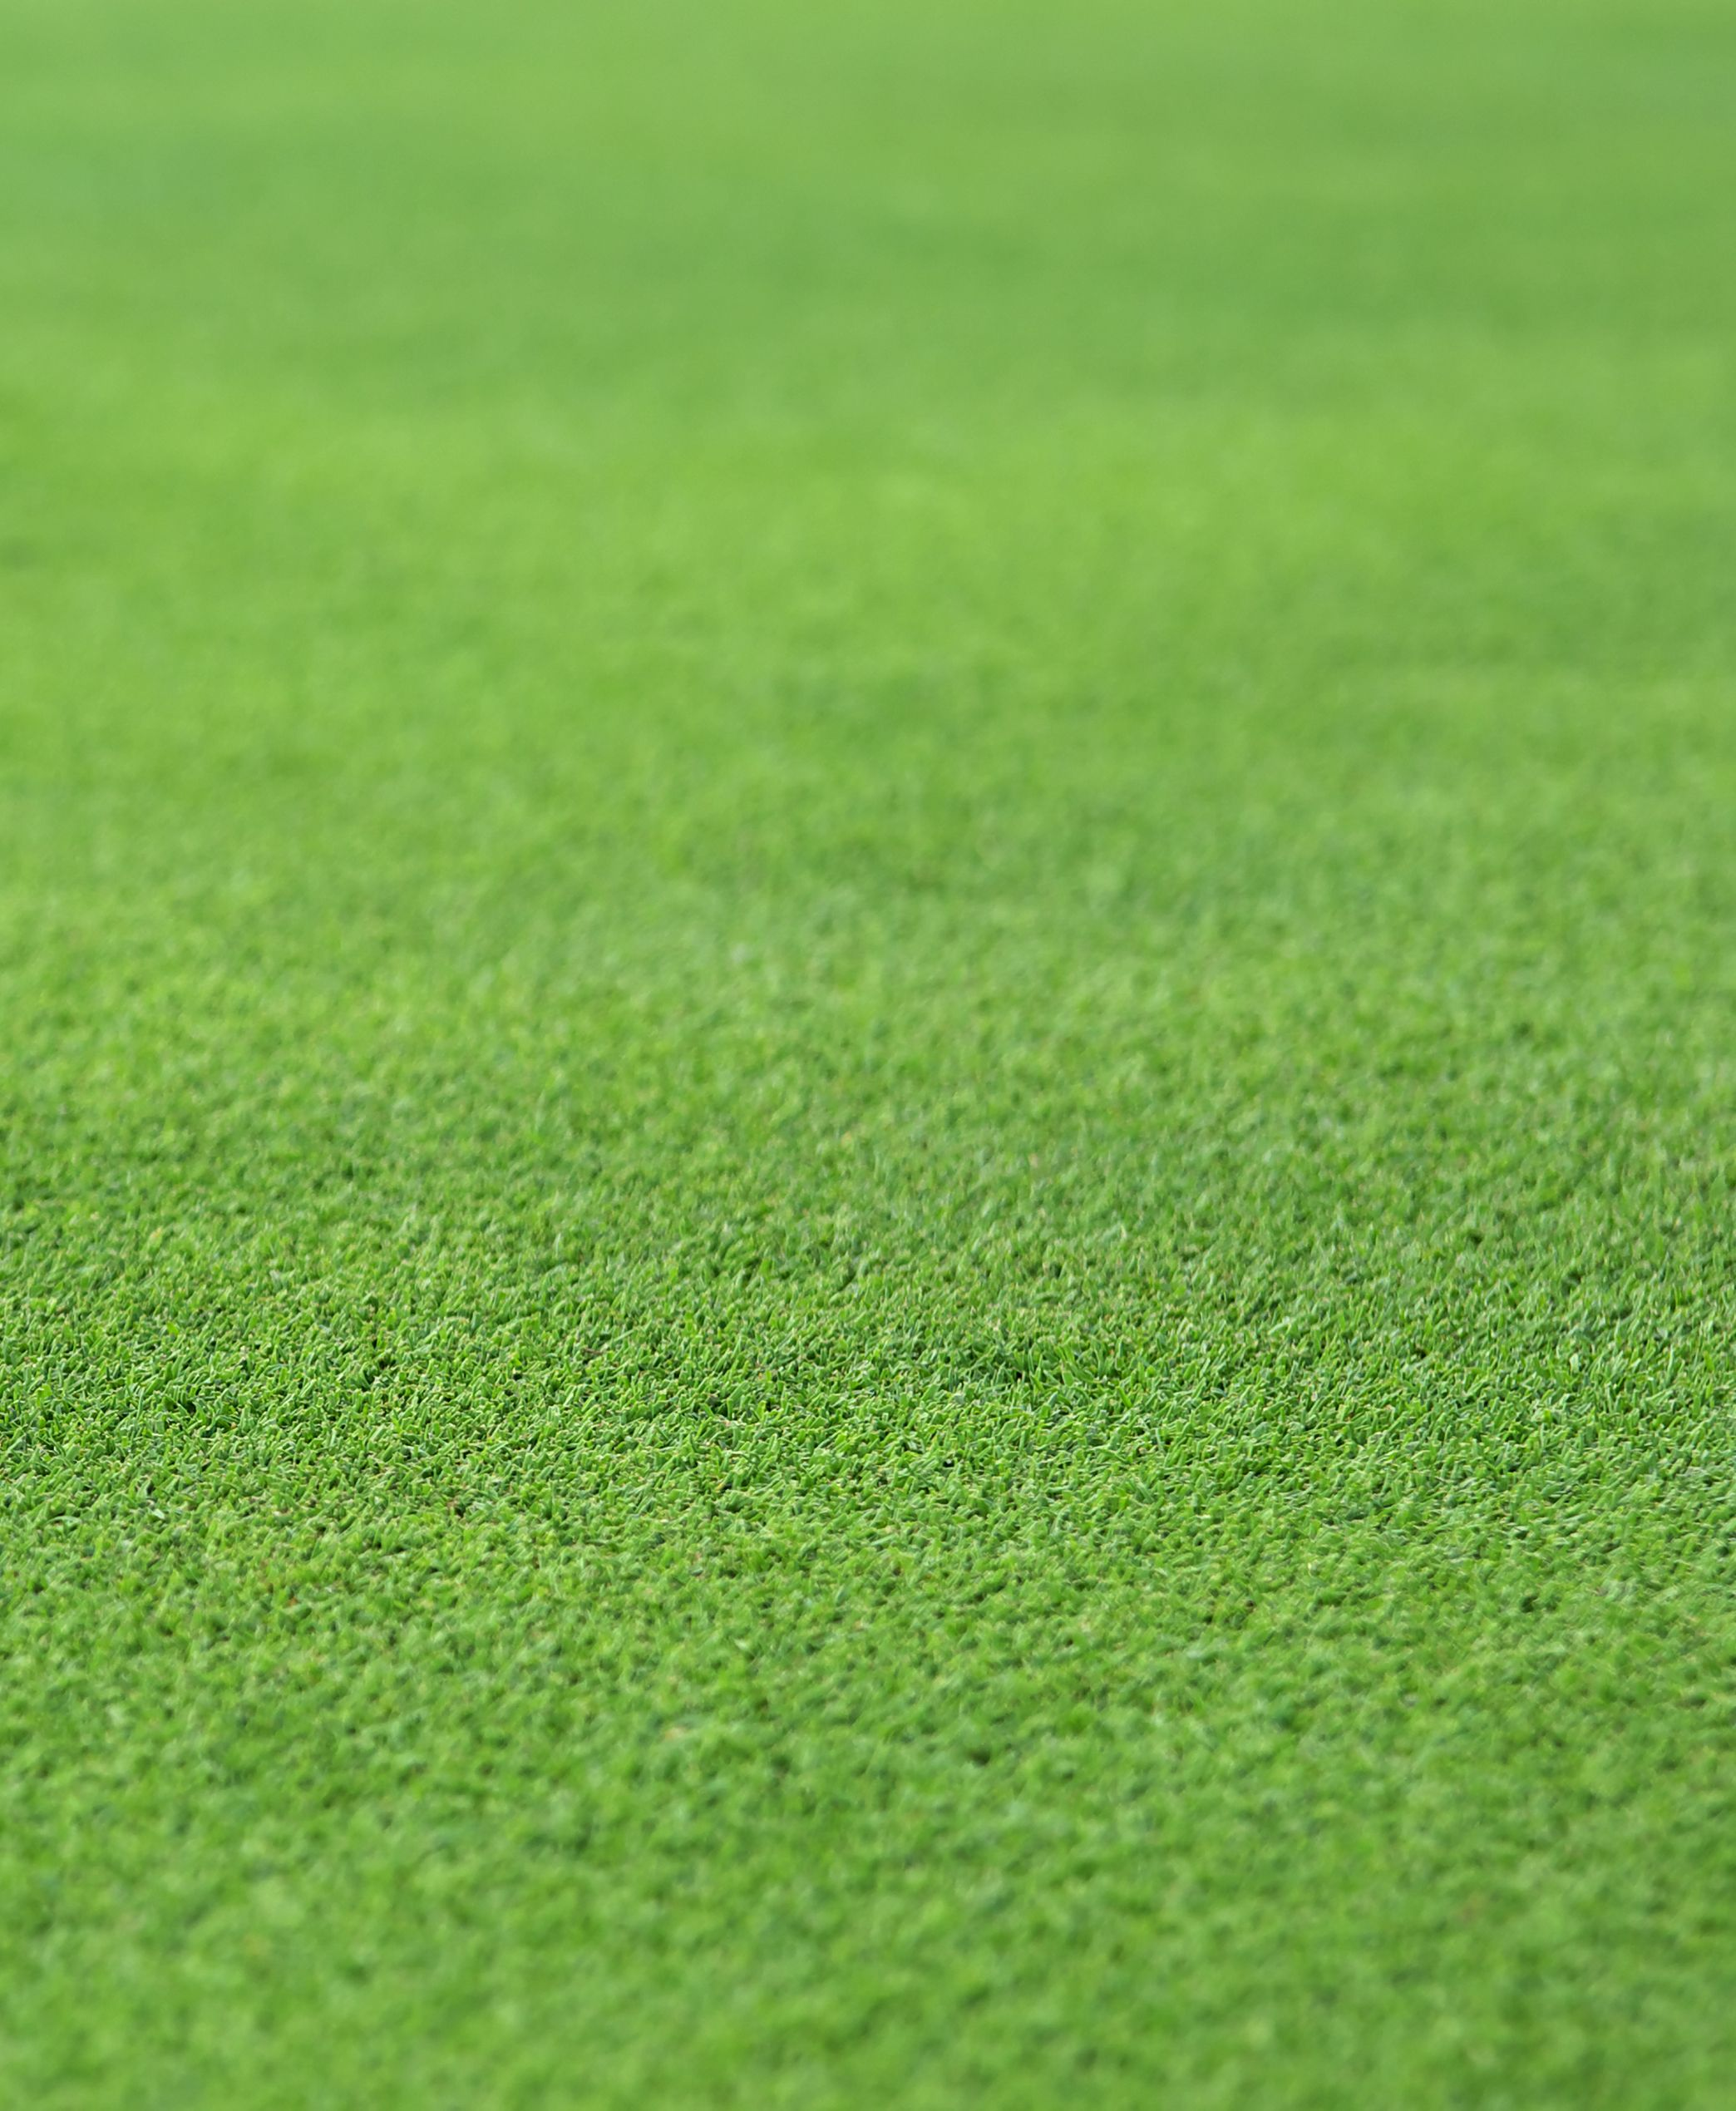 Stock photo of a perfect grass texture from a golf hole